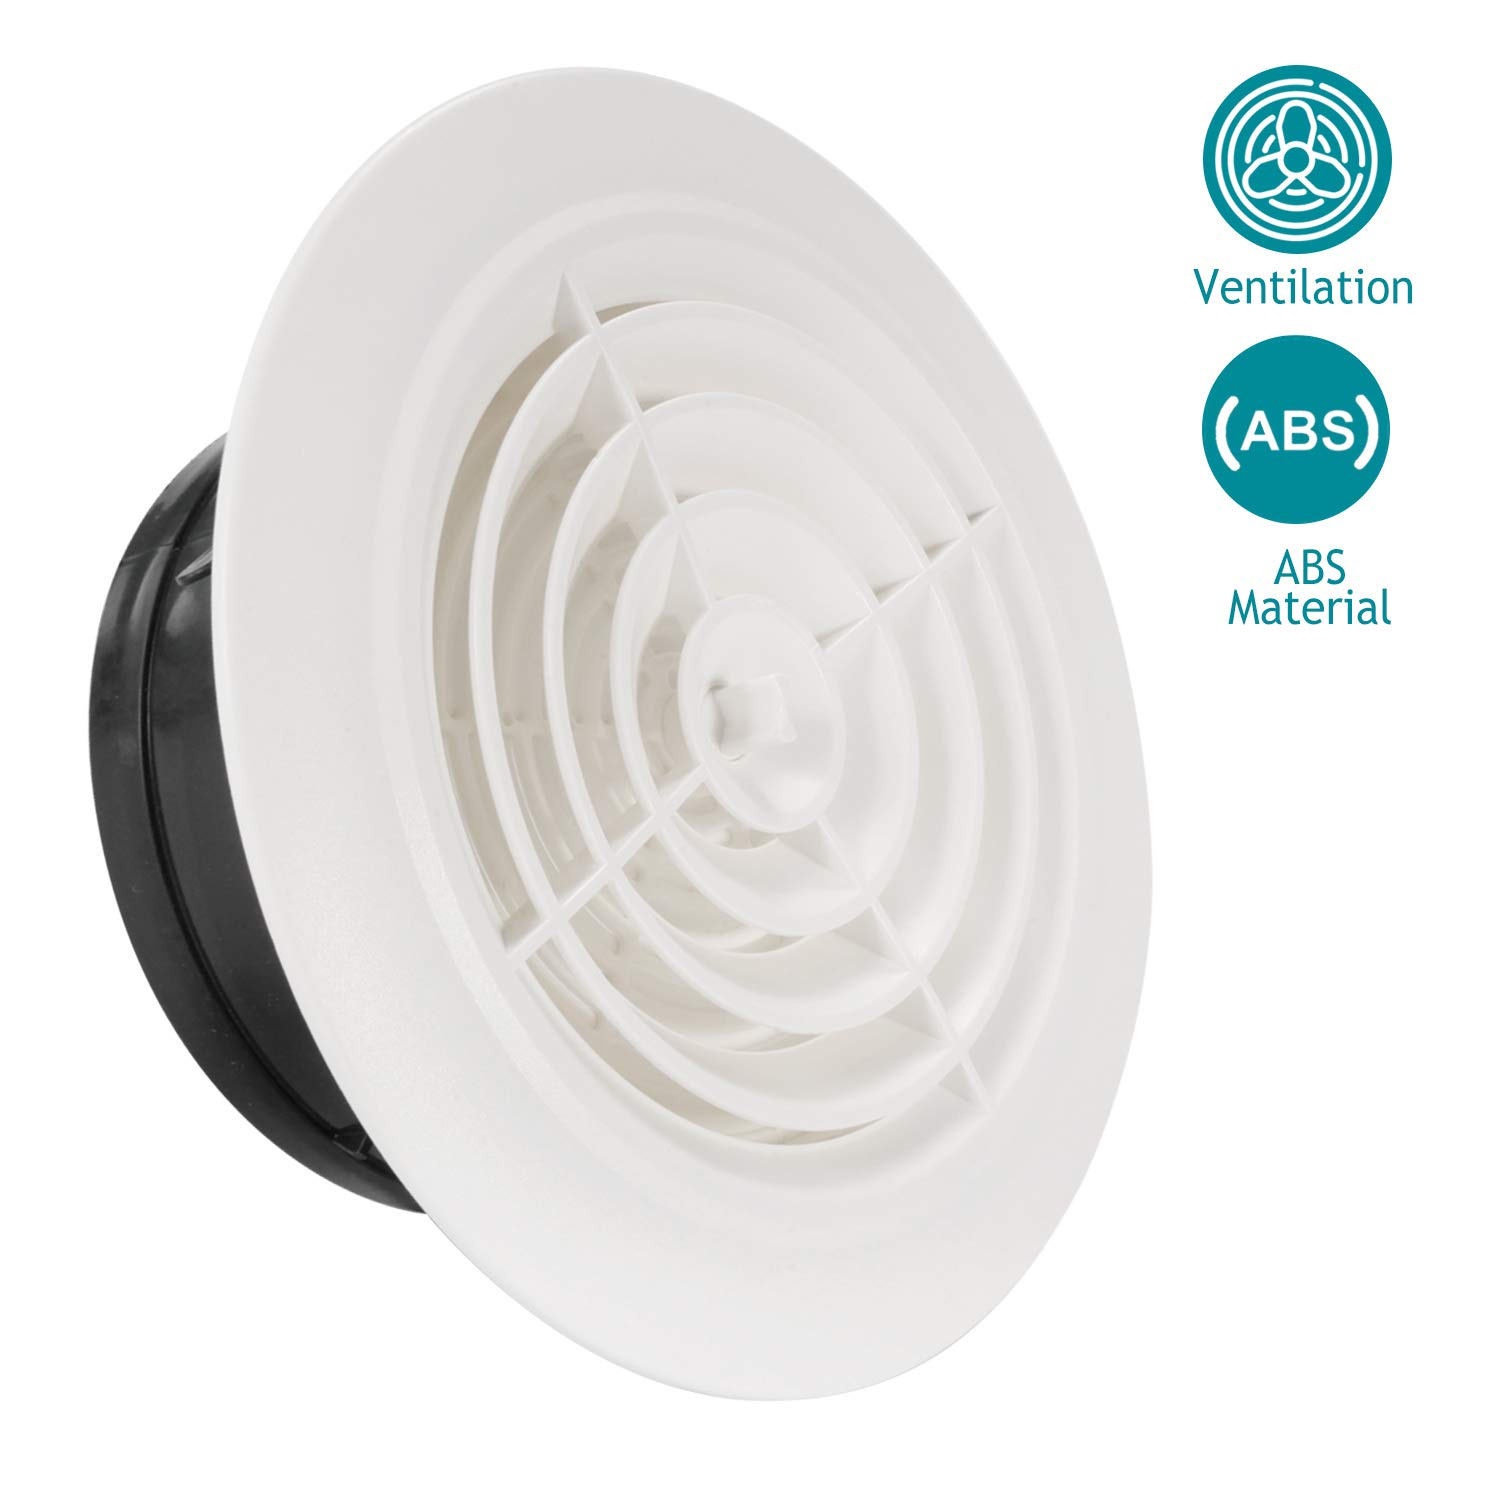 HG POWER 6 Inch Round Air Vent ABS Louver White Grille Cover Adjustable Exhaust Vent Fit for Bathroom Office Kitchen Ventilation